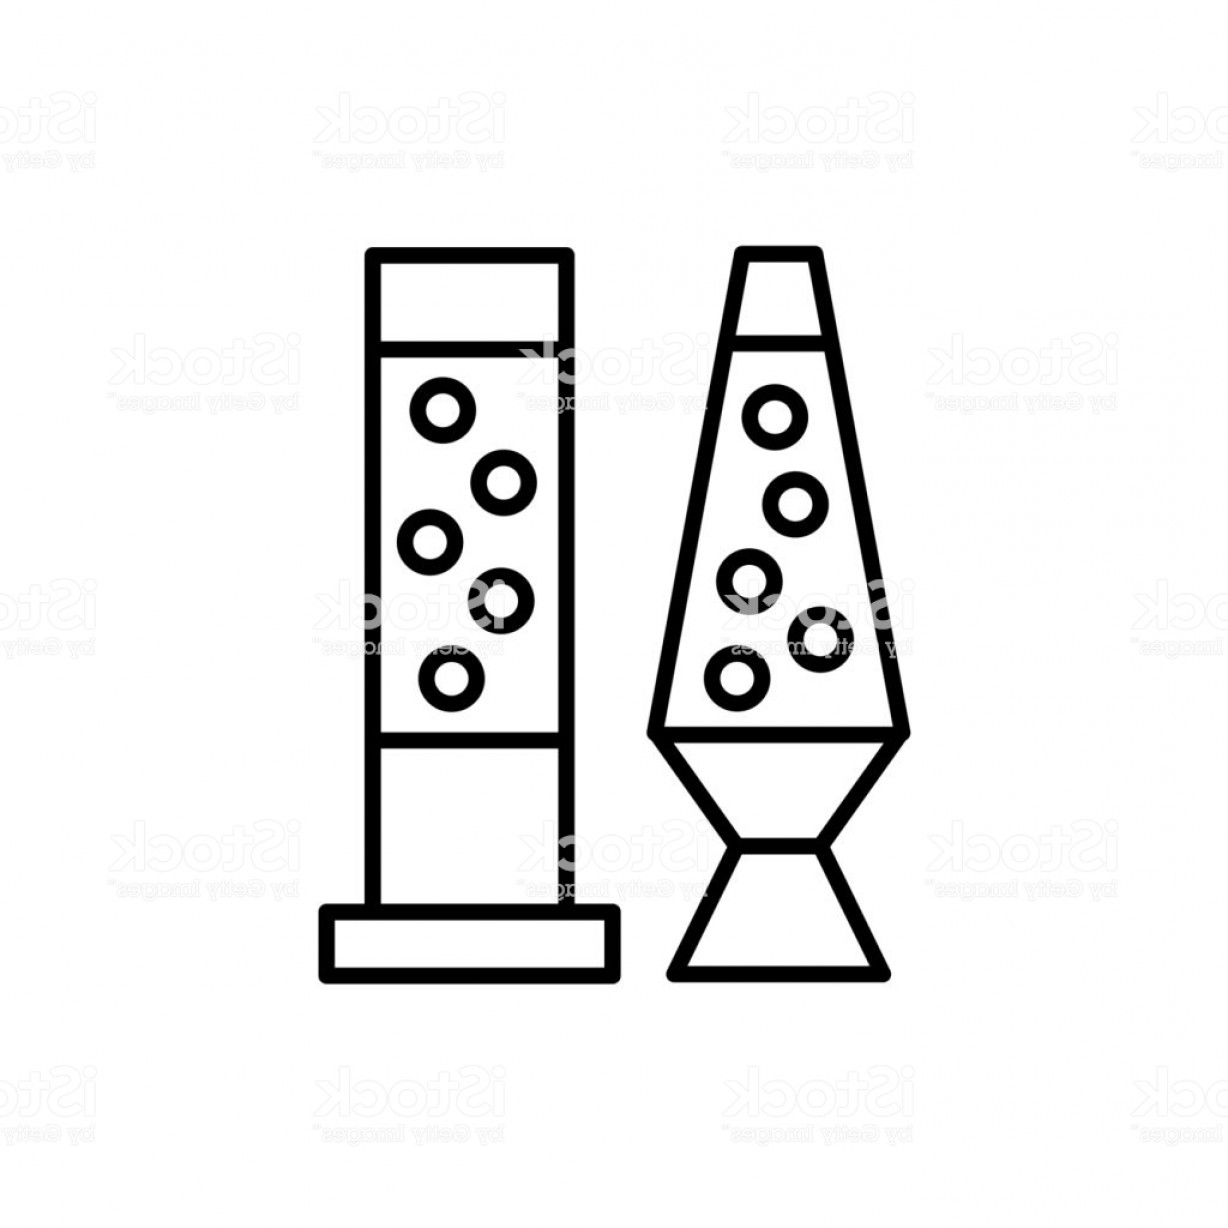 Vector Art Black And White Bubbles: Black White Vector Illustration Of Table Lava Lamps With Bubbles Line Icon Of Gm